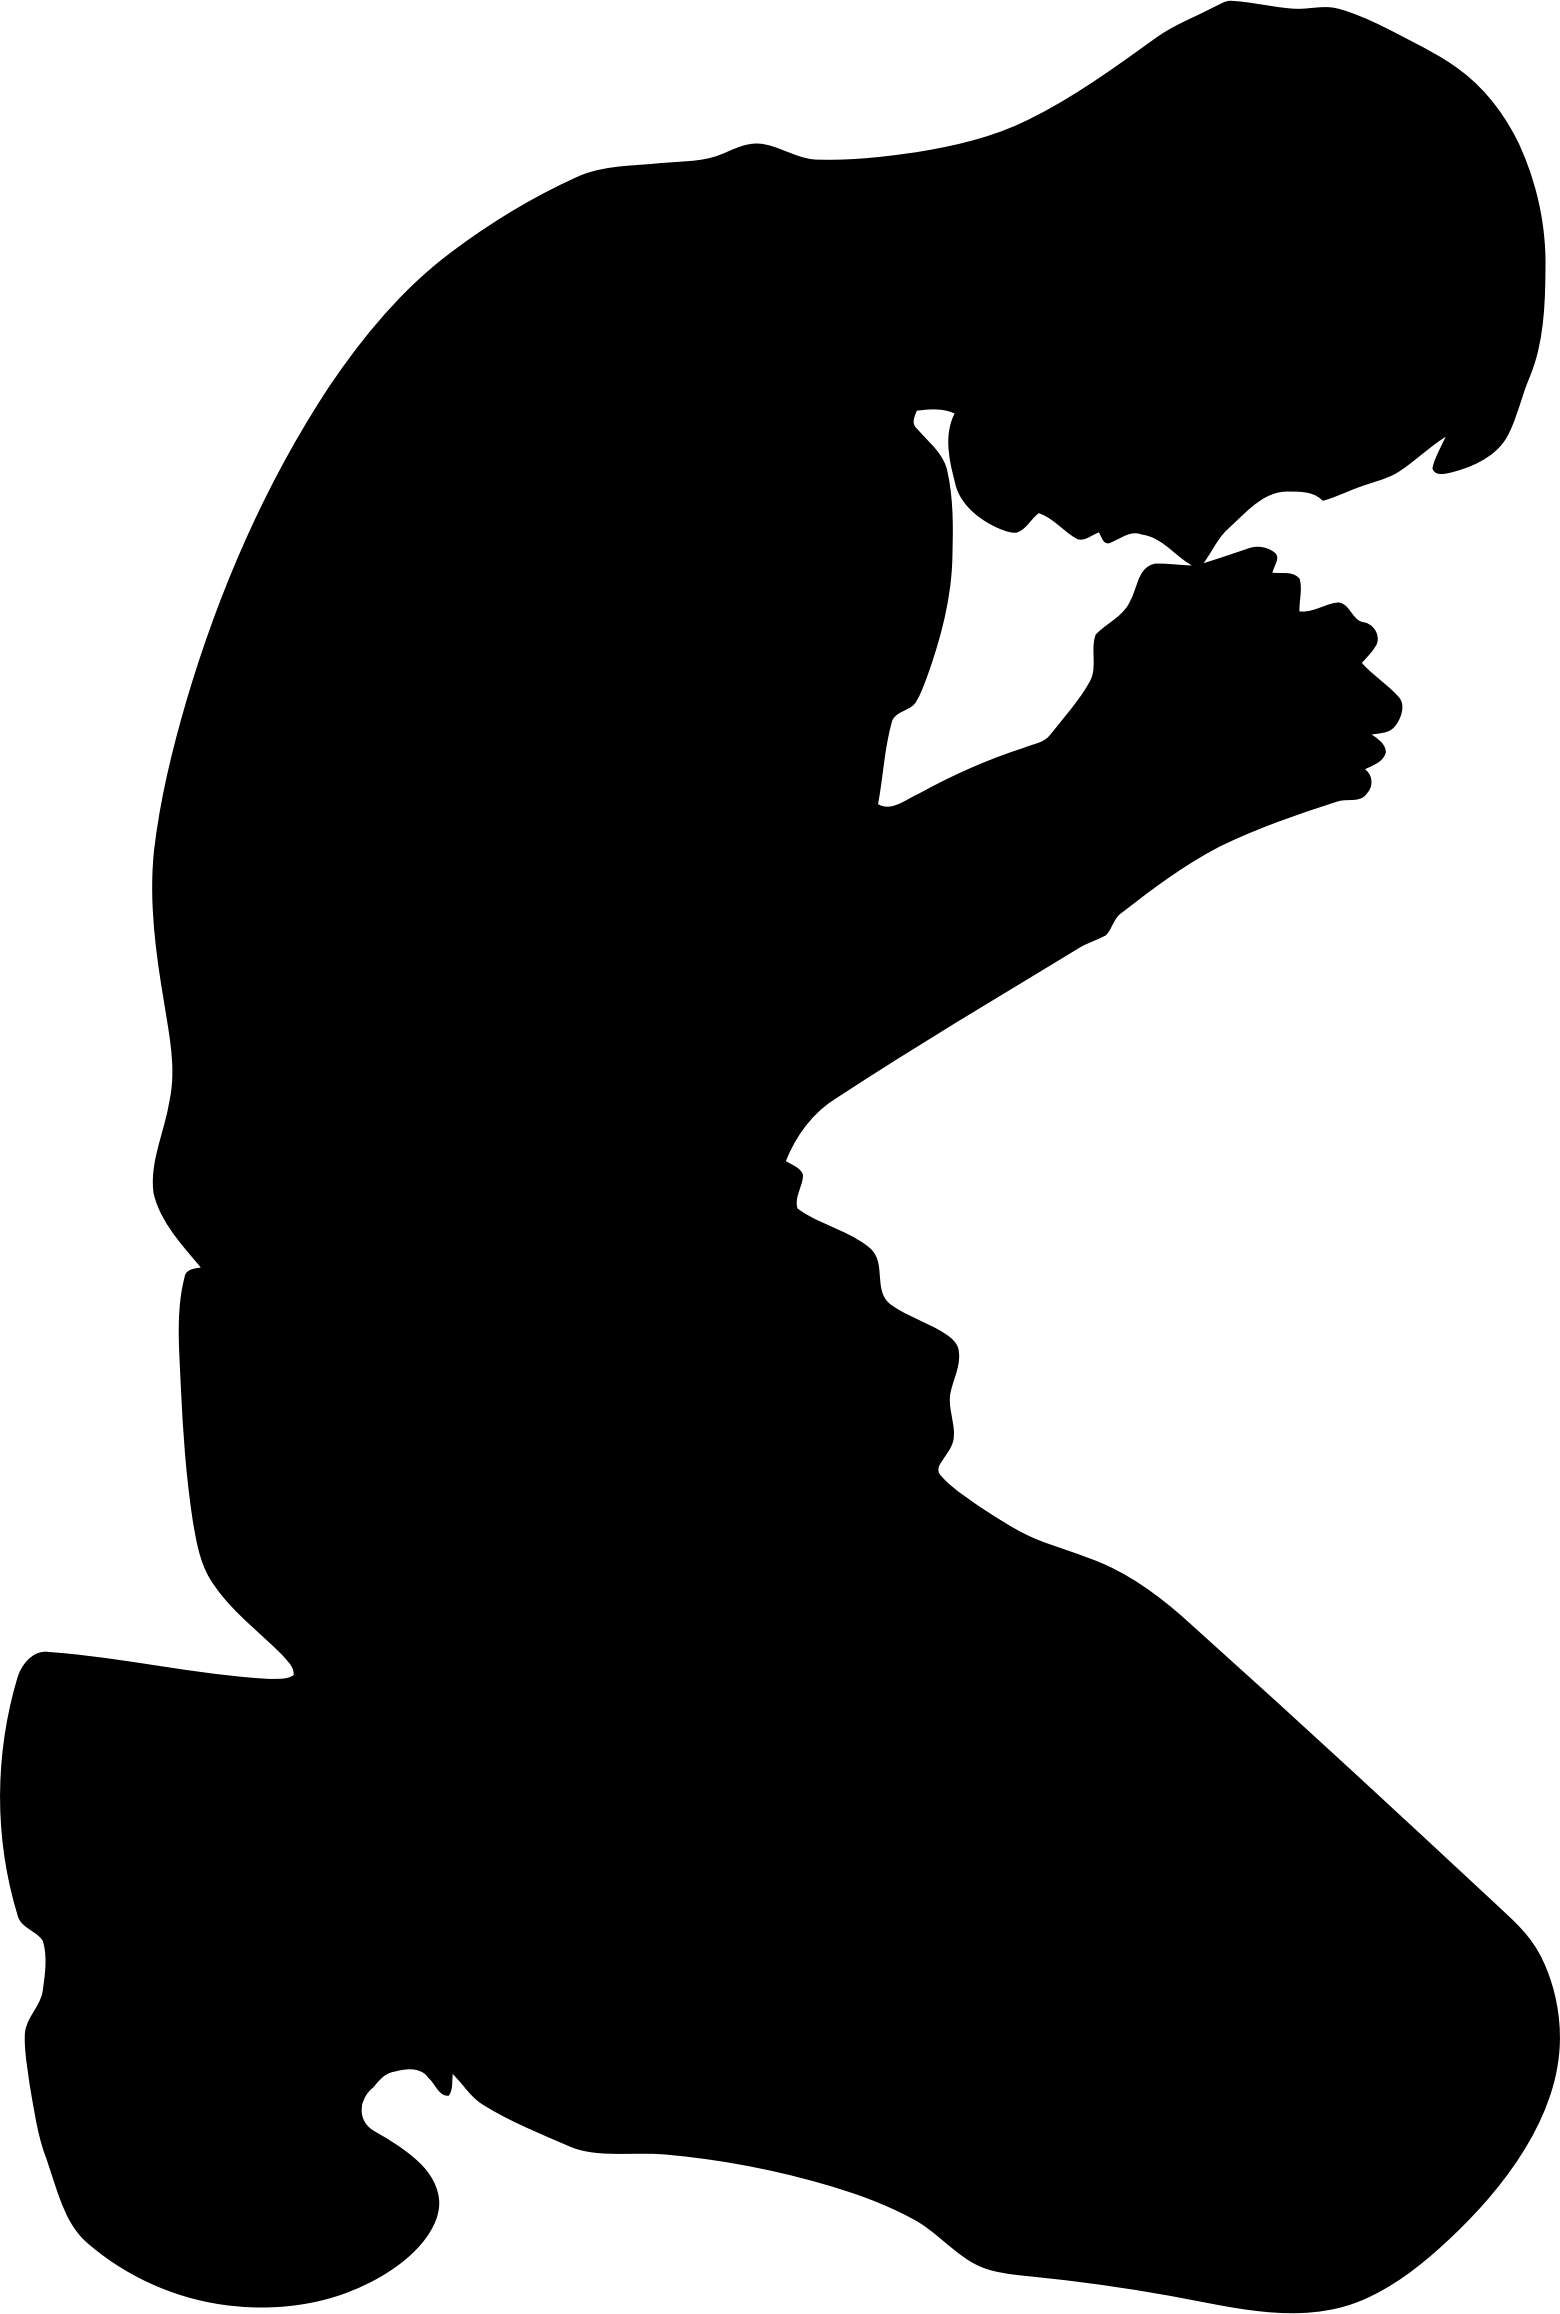 1560x2314 Man Kneeling In Prayer Minus Ground Silhouette